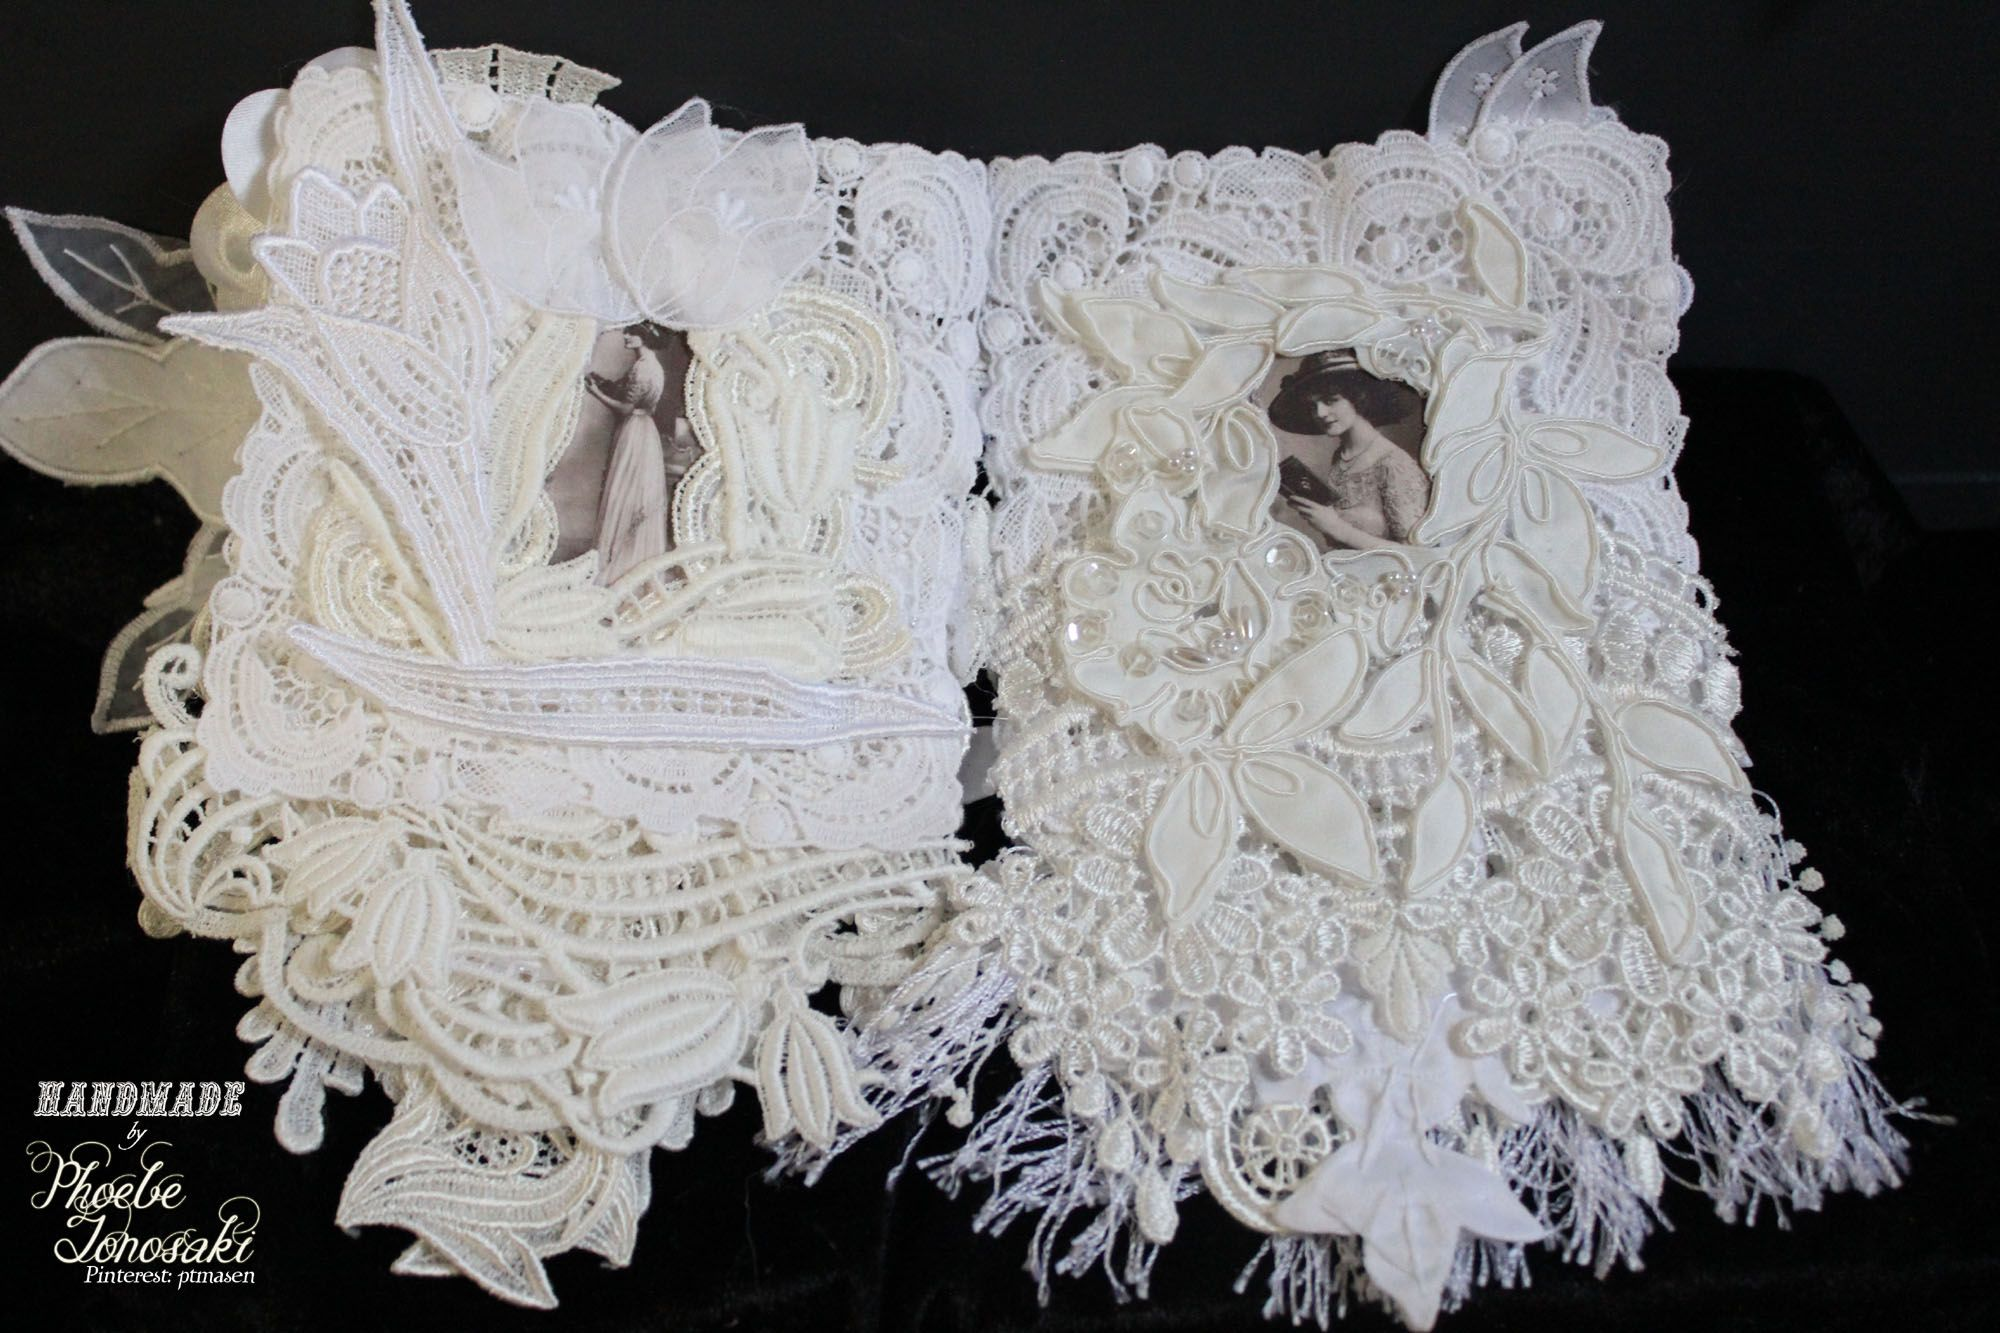 Comment by Phoebe Tonosaki: Lavender sachet book page 4 and 5. She has beautiful lace and flower work. Check her out if you have time.